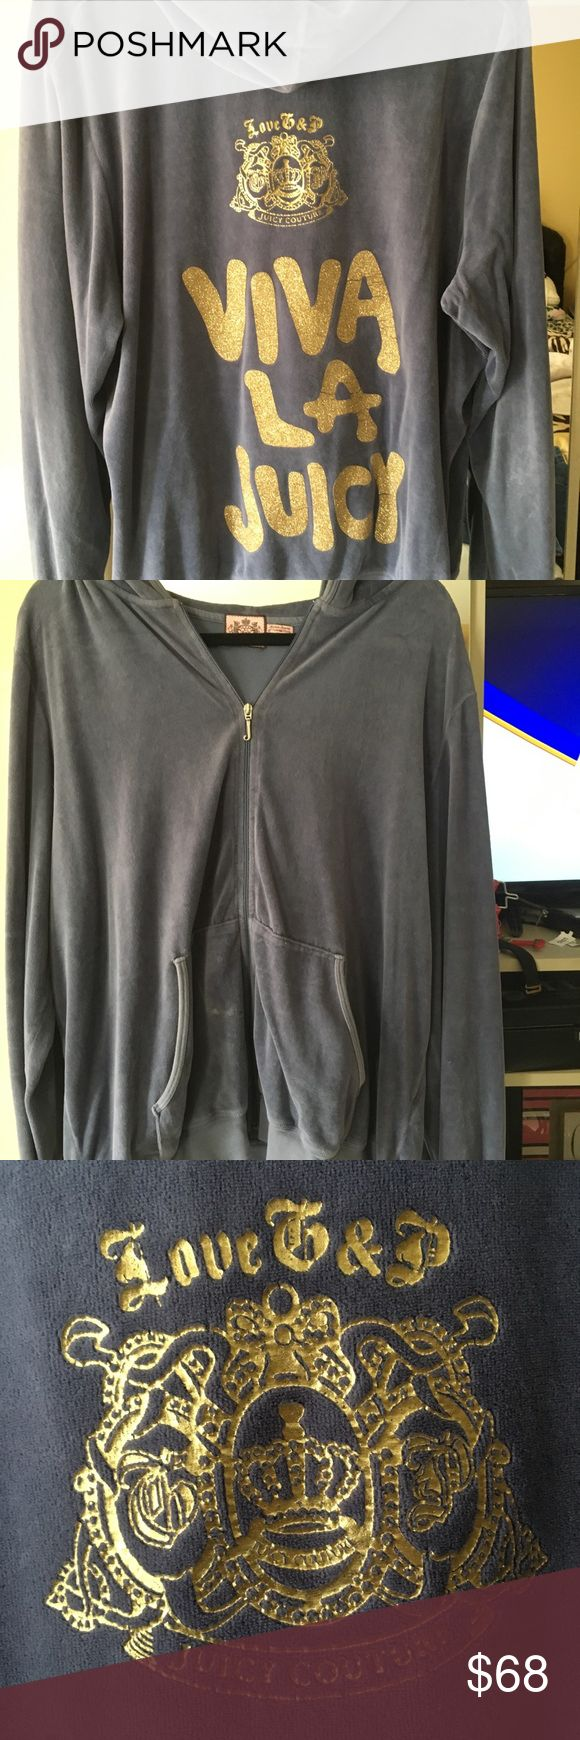 Juicy couture plus sized Valore grey zip up hoodie Very rare. Viva lawjuicy glitter Valore zip up hoodie in plus size.  A must have for the curvy fashionista Juicy Couture Jackets & Coats